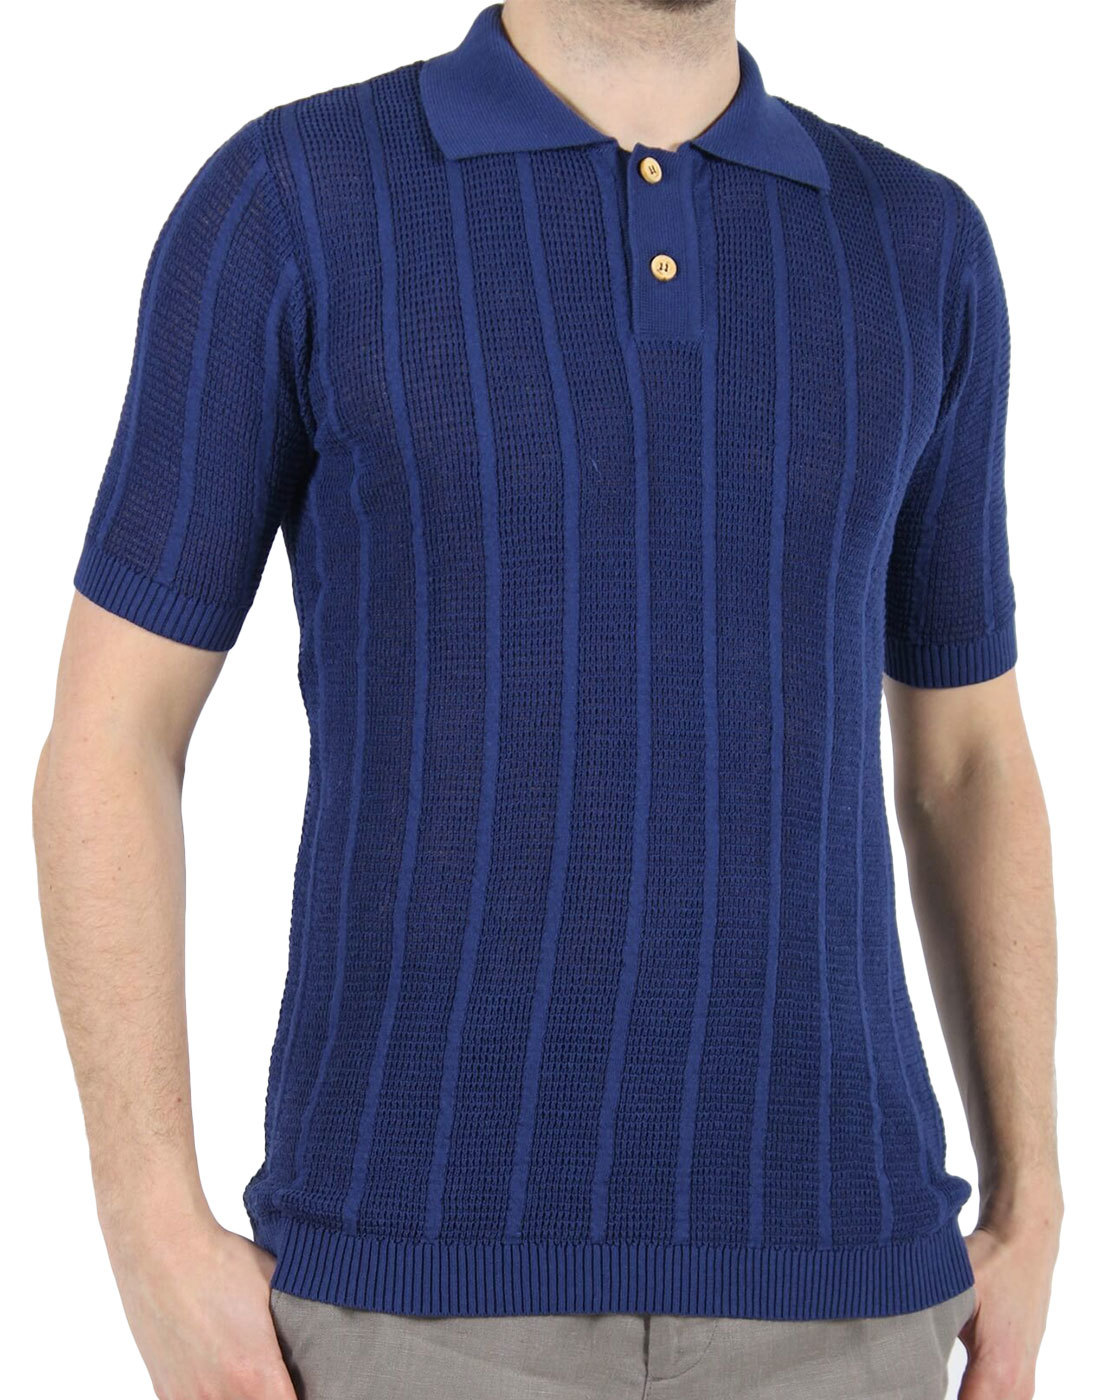 Aaron AFIELD Mens Retro 60s Knitted Crepe Polo N